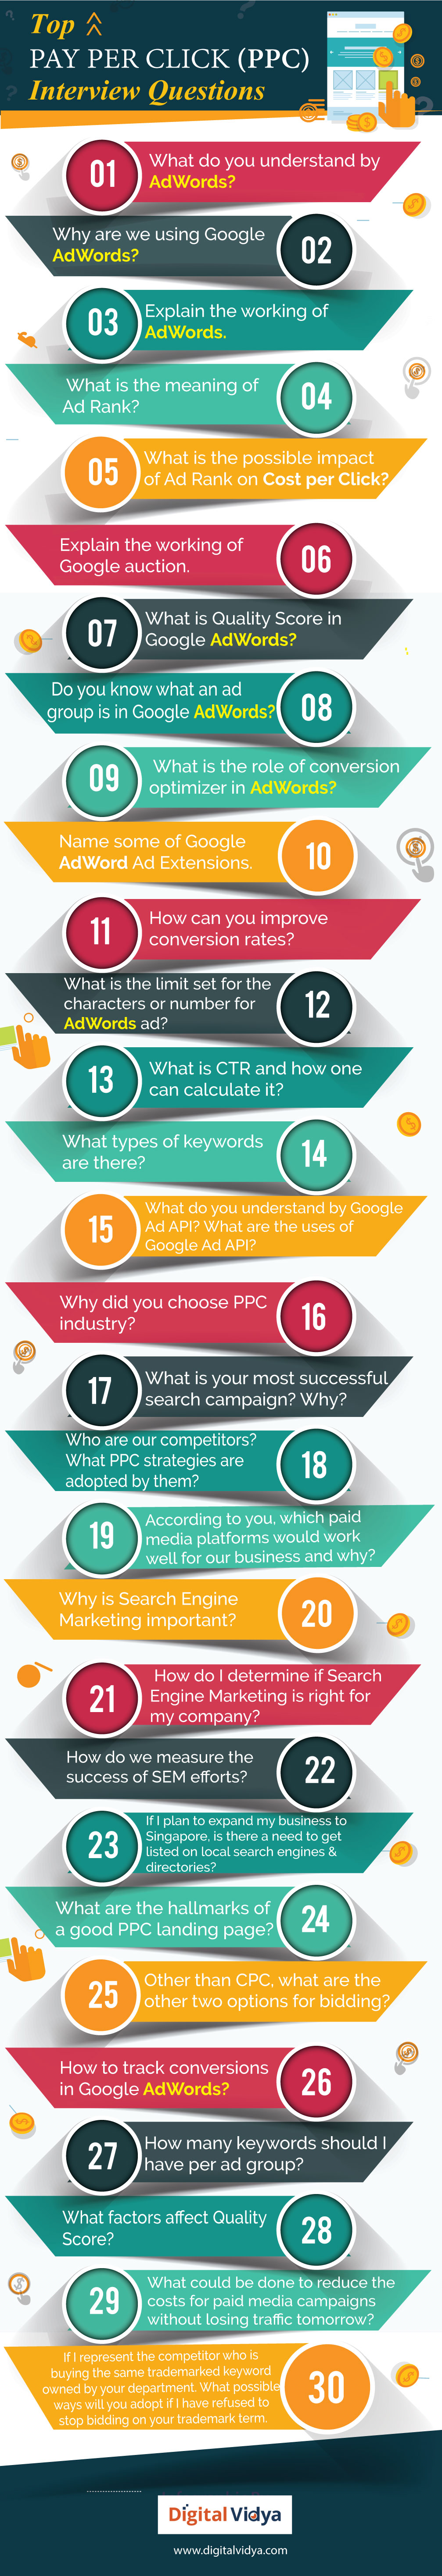 Must-Read: Top 30 PPC Interview Questions & Answers 2017